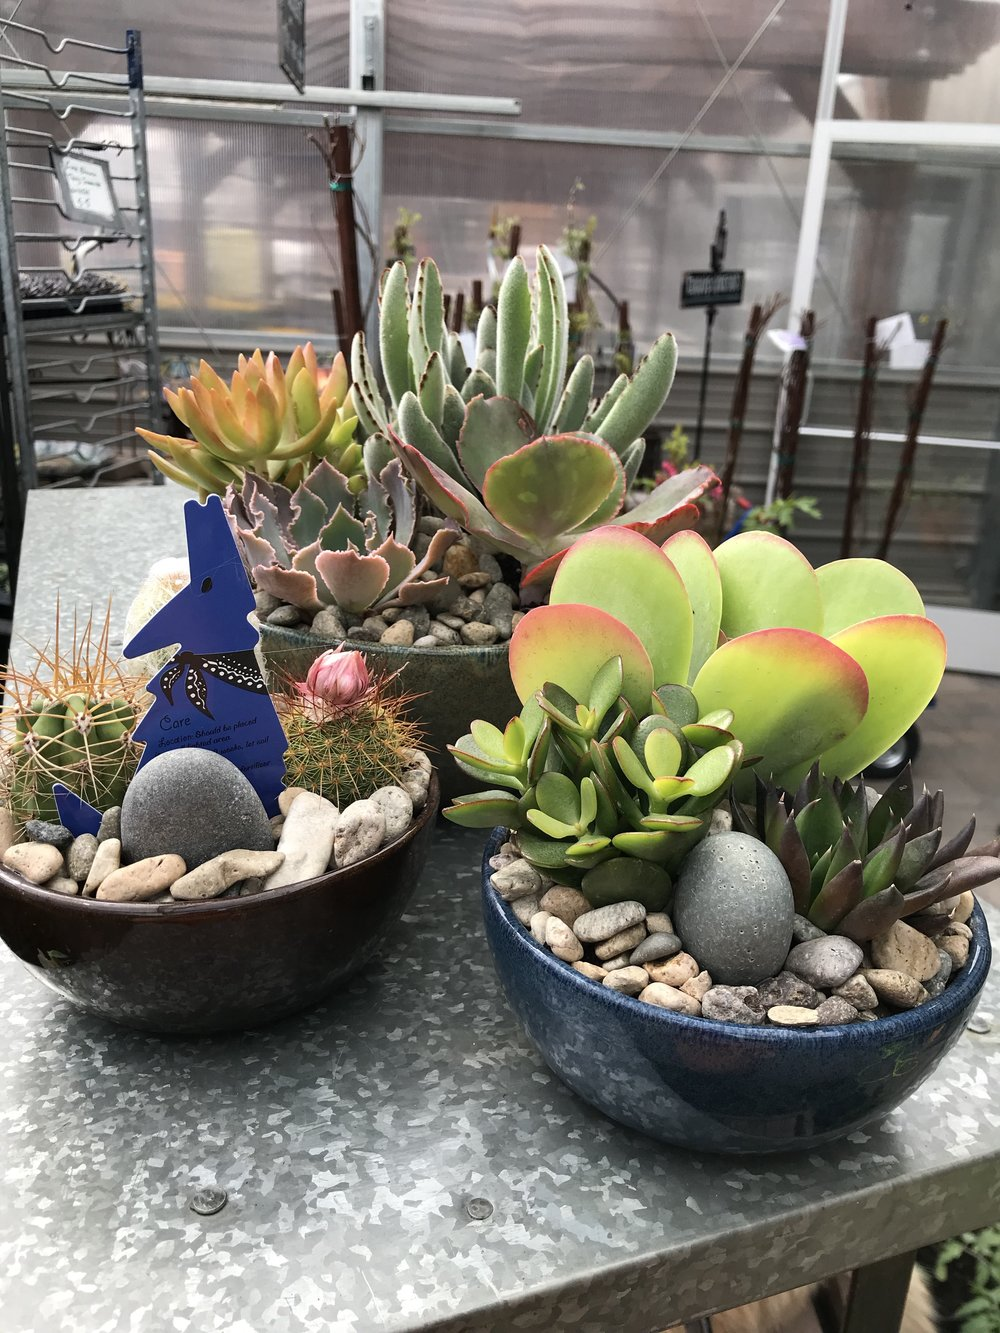 Terrarium Time - You pick your glass, or container, and plants A-La-Cart, then we provide all the instruction, rock, moss and planting materials required. This class is led by Melissa and is always a fun time.